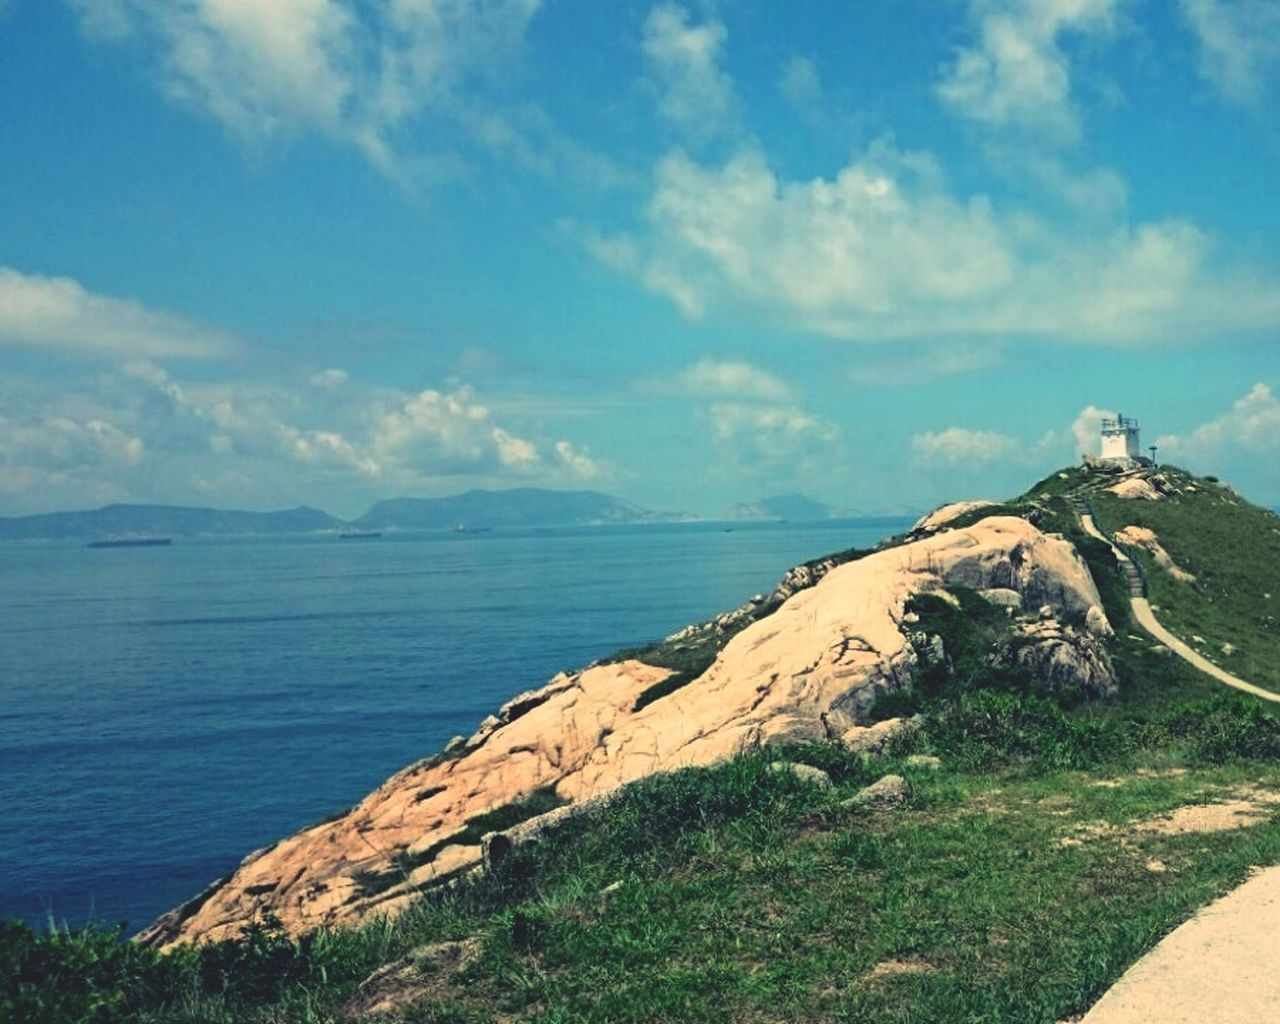 scenics, nature, beauty in nature, tranquility, mountain, tranquil scene, sea, outdoors, day, no people, sky, grass, water